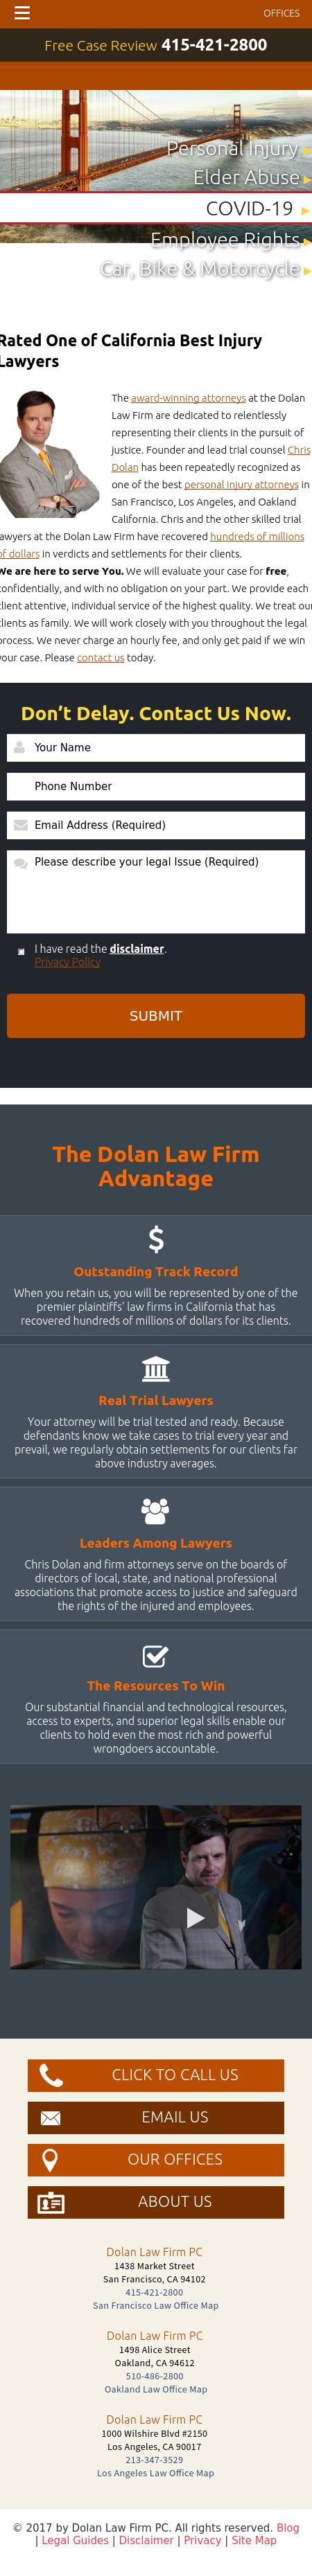 The Dolan Law Firm - Oakland CA Lawyers